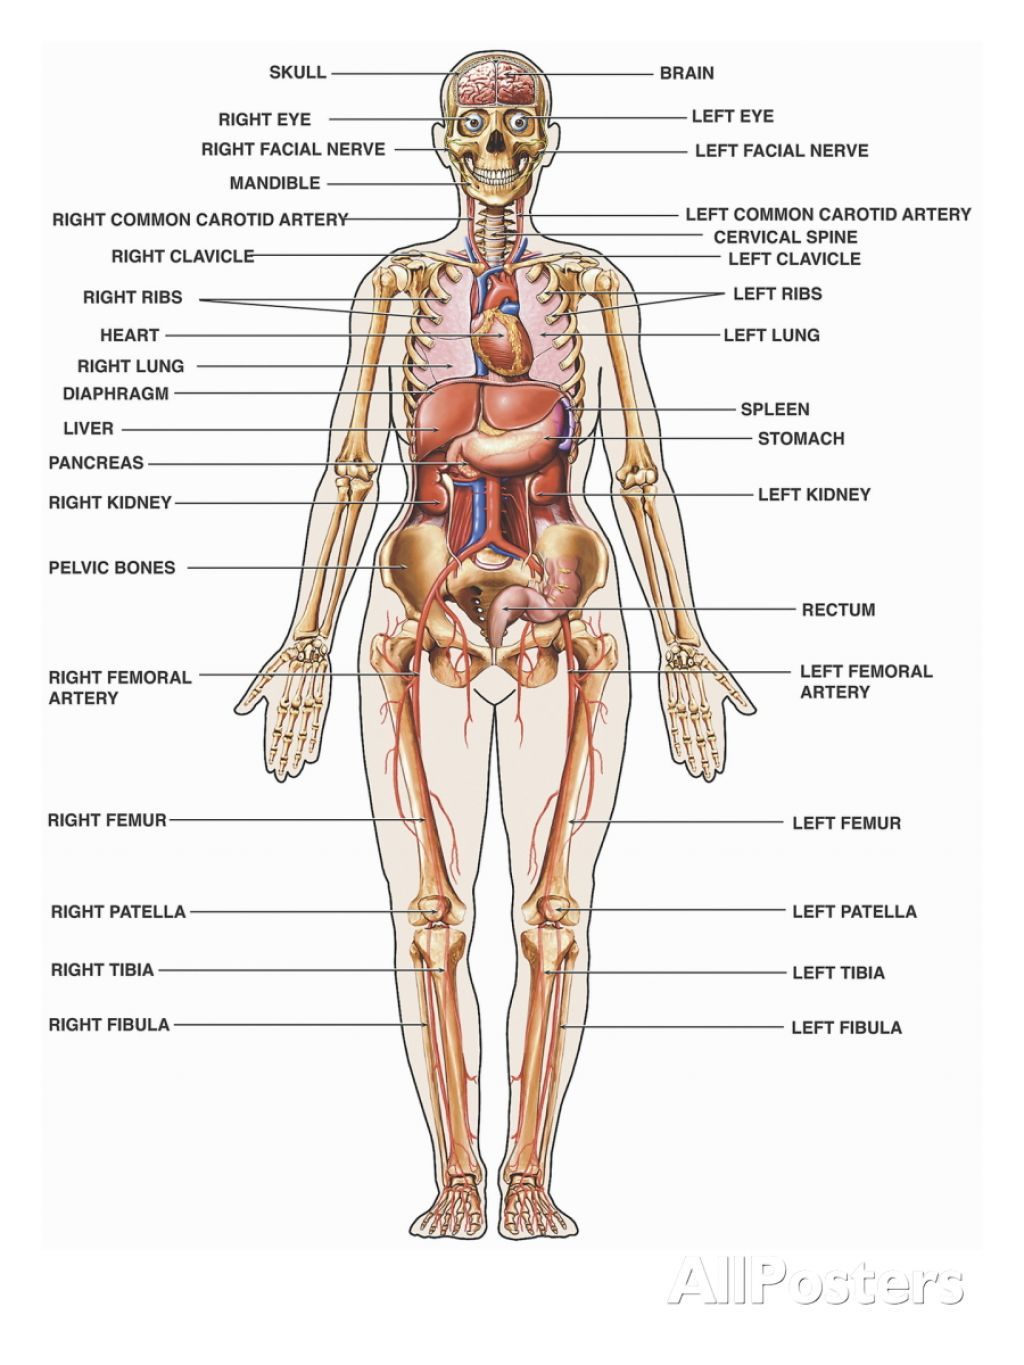 anatomy of the human body system | growablegreetings.com | Pinterest ...